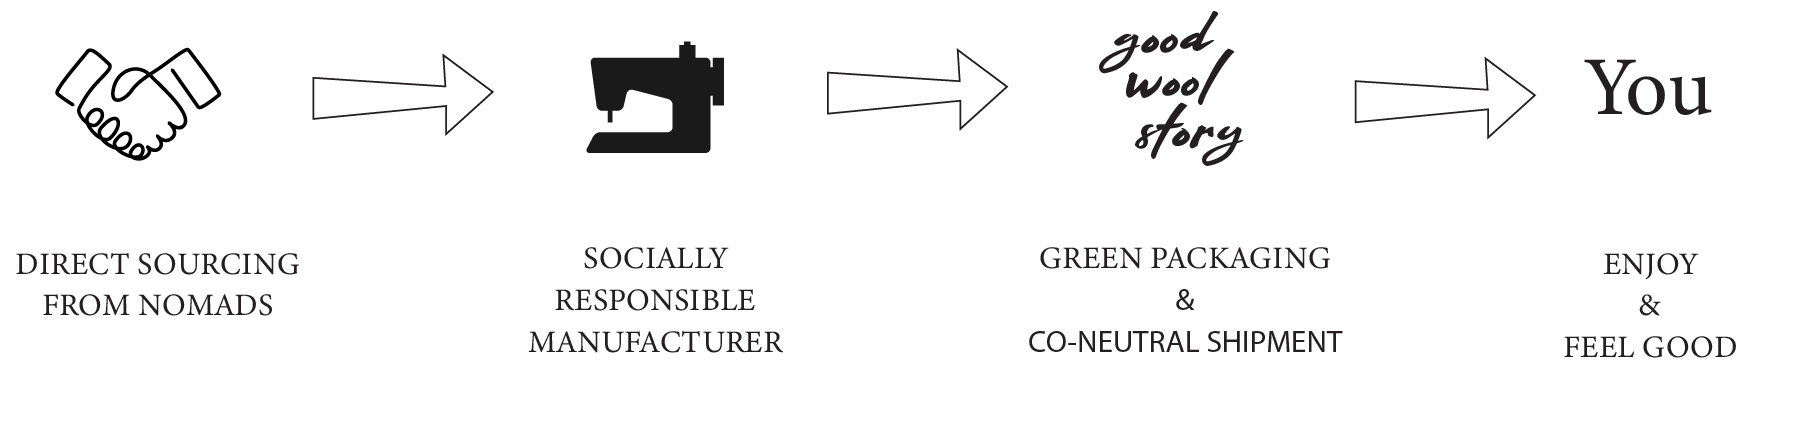 supply chain diagram of good wool story showing how the wool is bought directly from the nomads and how the end product is made and delivered to the end customer